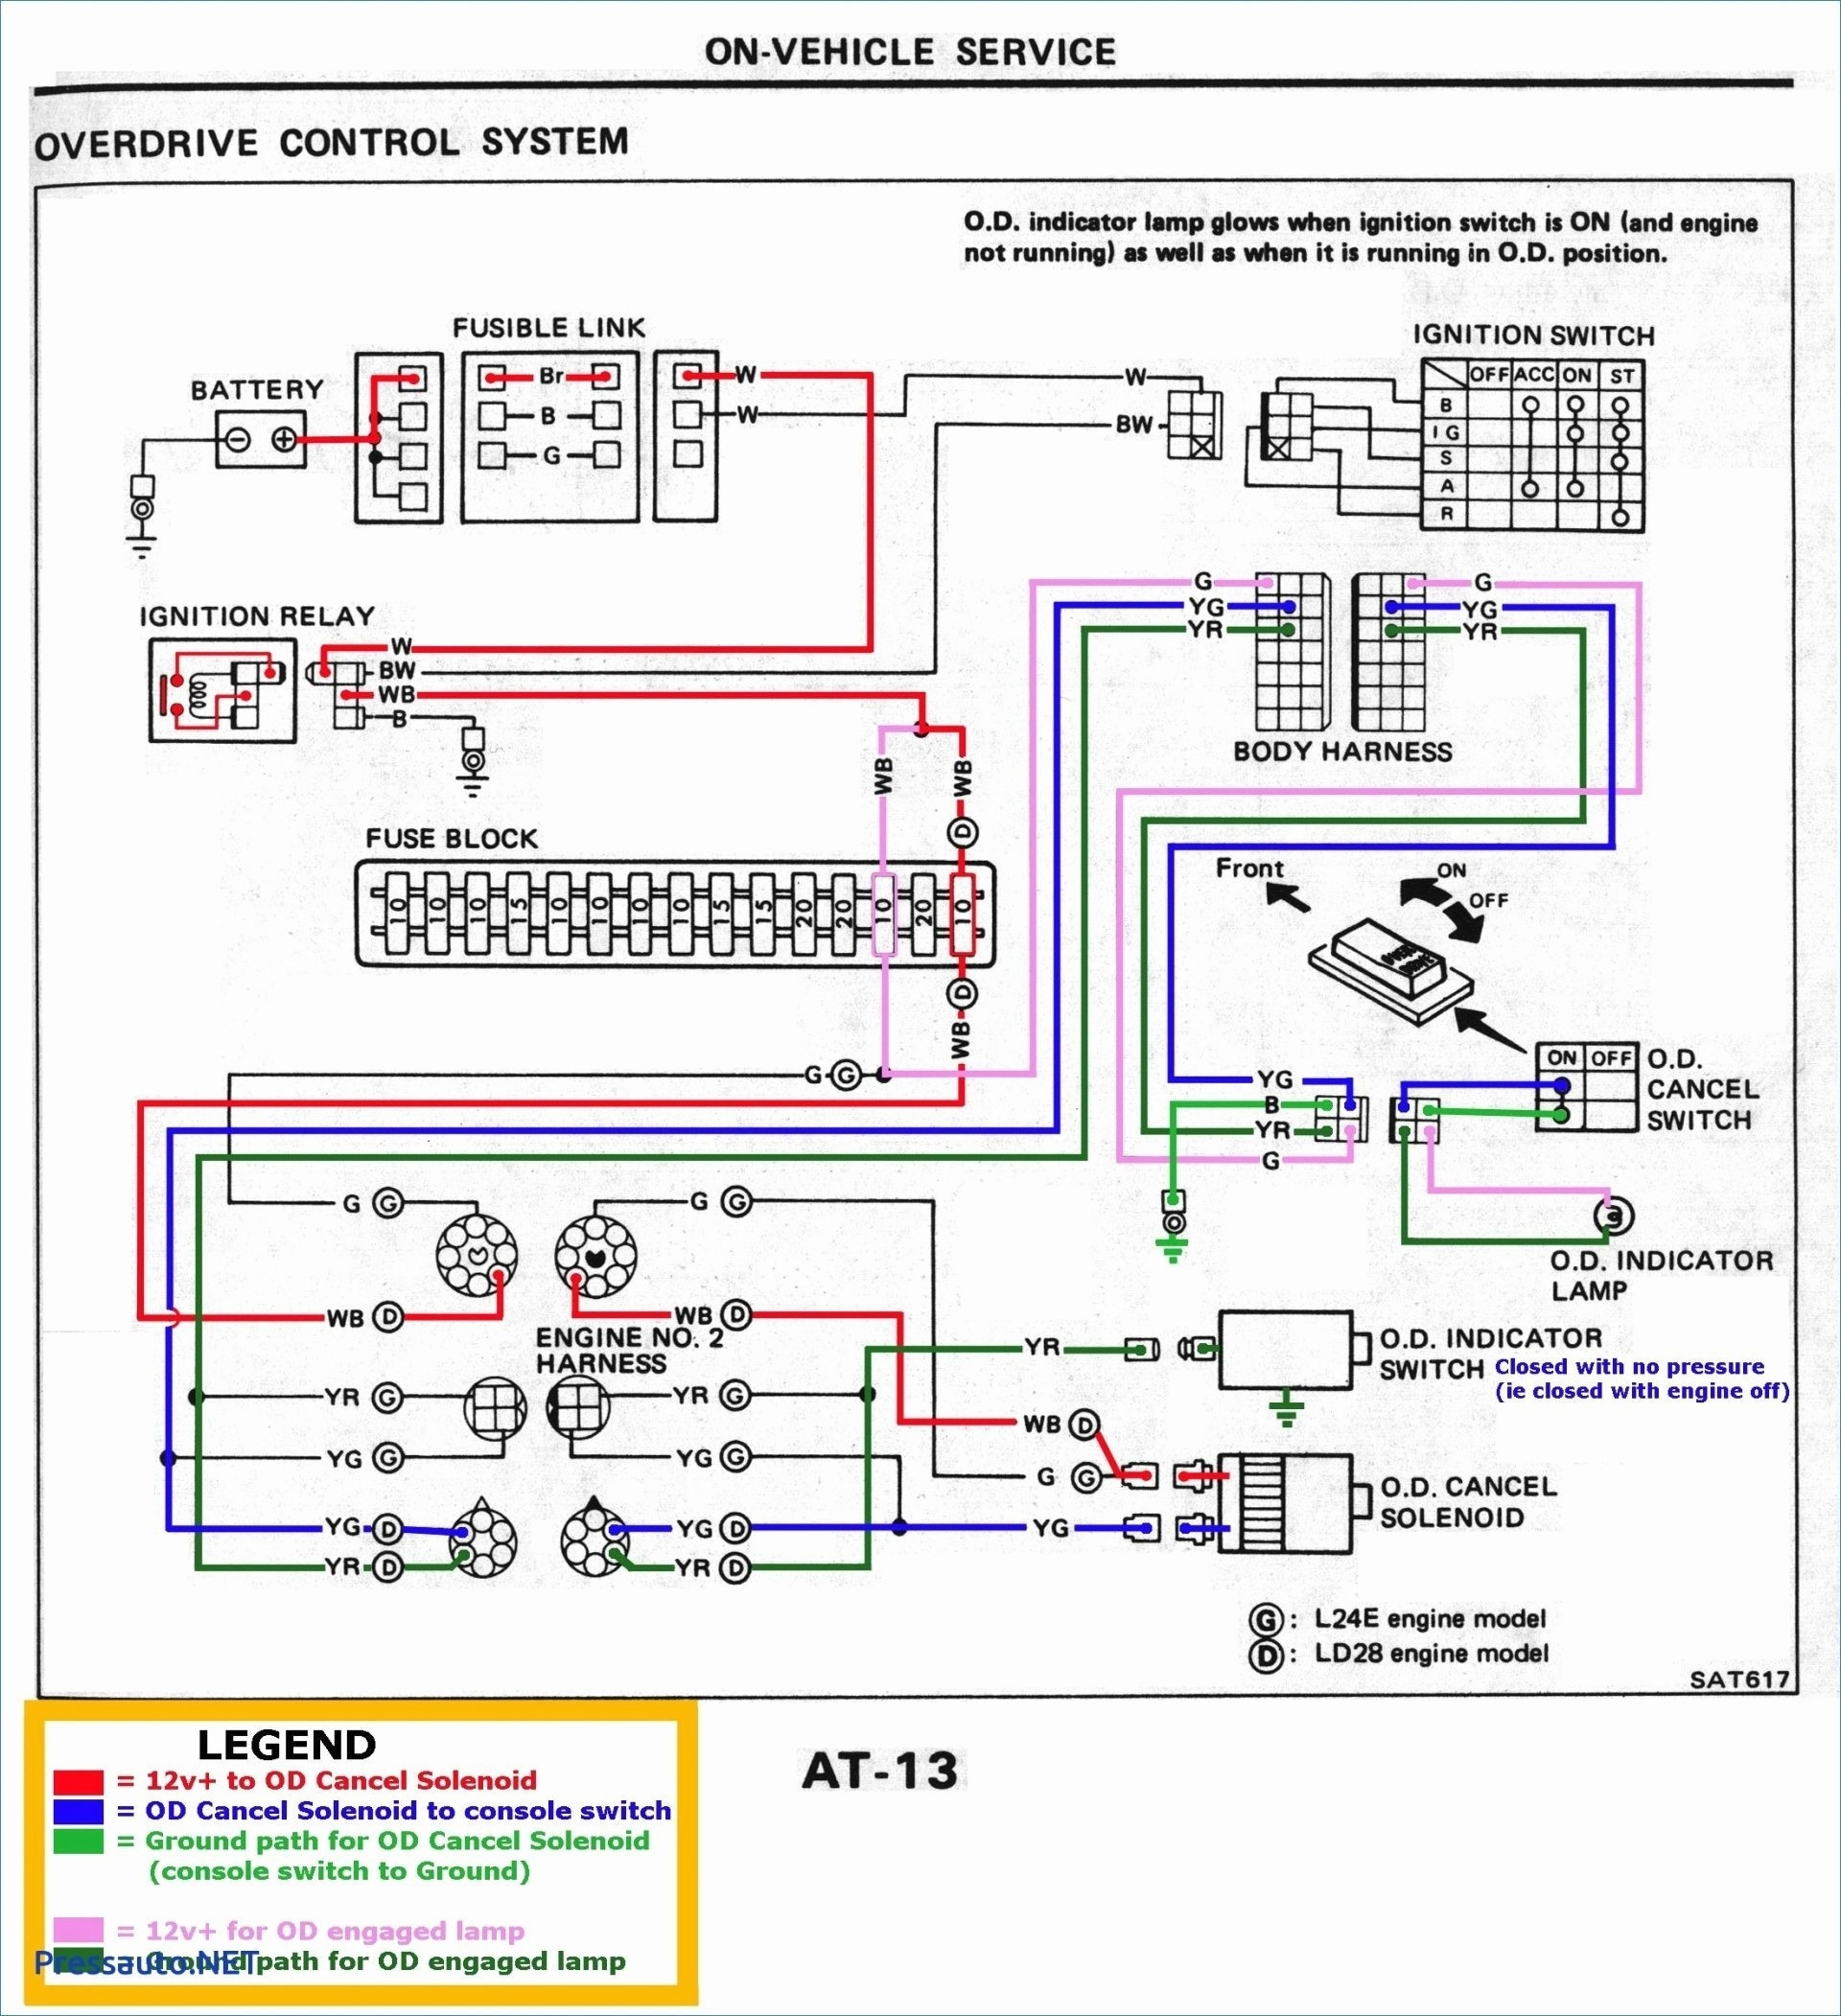 Denso Heater Wiring Diagram | Wiring Diagram on nissan wiring diagram, delco wiring diagram, dorman wiring diagram, panasonic wiring diagram, kawasaki wiring diagram, toshiba wiring diagram, truck wiring diagram, volvo wiring diagram, mitsubishi wiring diagram, ford wiring diagram, sony wiring diagram, samsung wiring diagram, daihatsu hijet wiring diagram, taylor wiring diagram, bmw wiring diagram, abb wiring diagram, honda wiring diagram, toyota wiring diagram, johnson controls wiring diagram, chrysler wiring diagram,